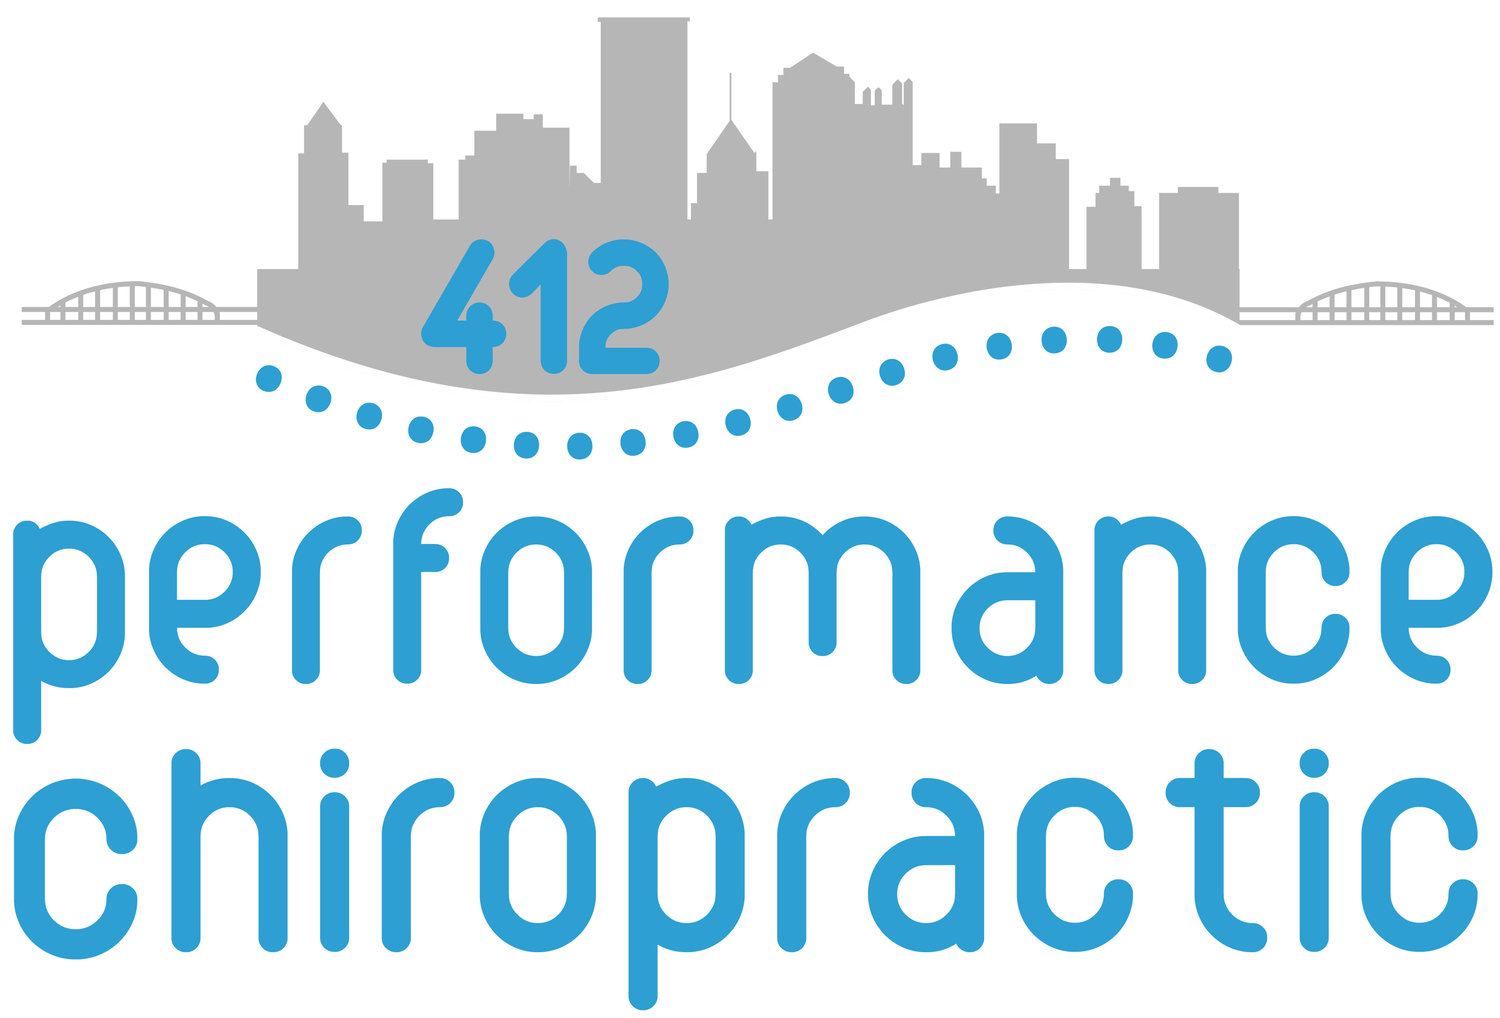 Robinson Township Chiropractors | 412 Performance Chiropractic